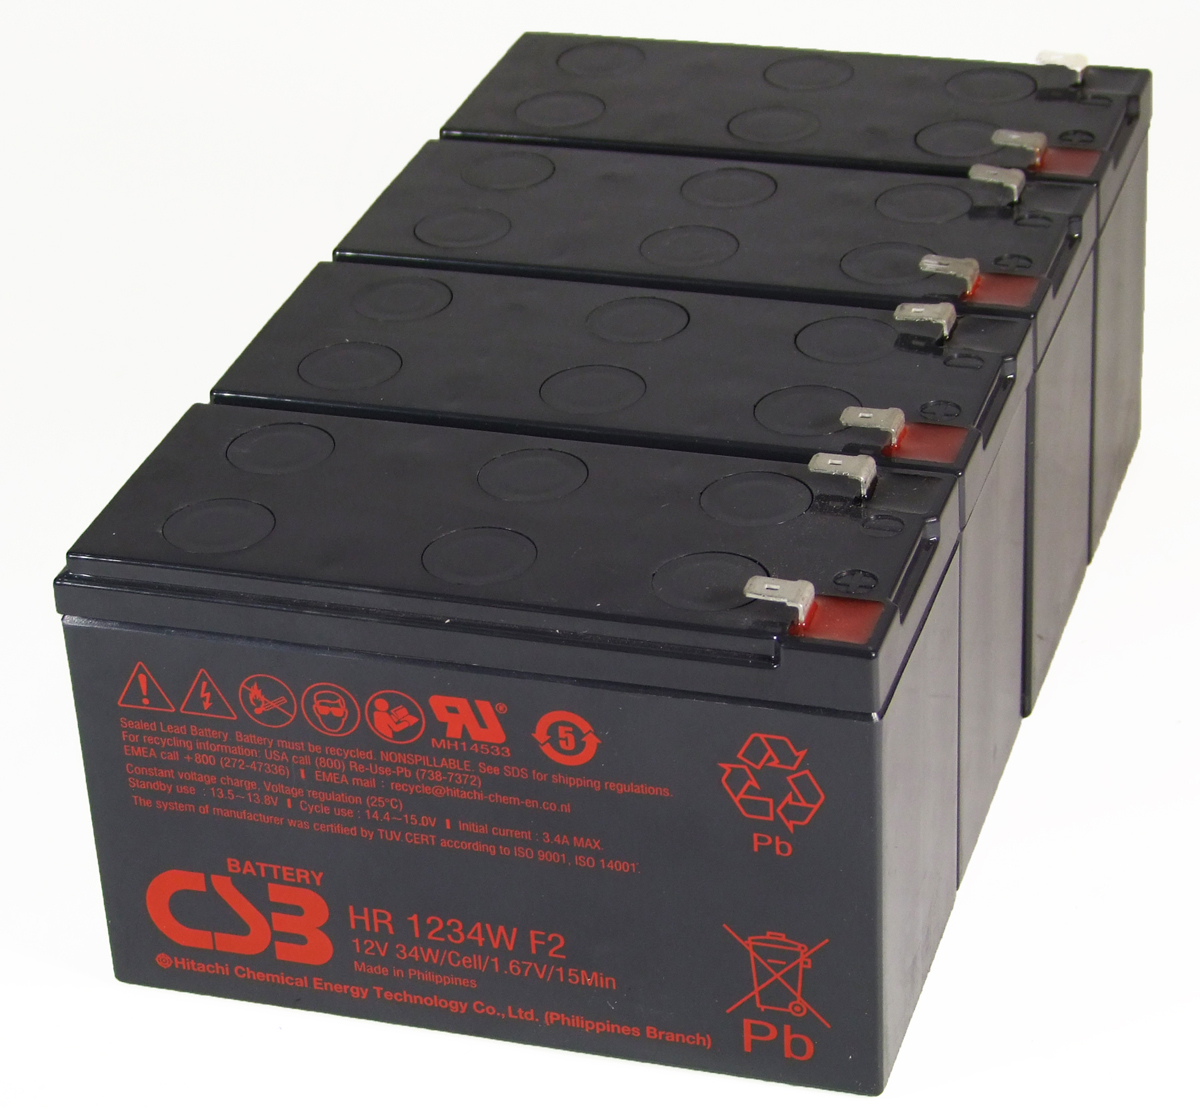 MDS115 UPS Battery Kit - Replaces APC RBC115